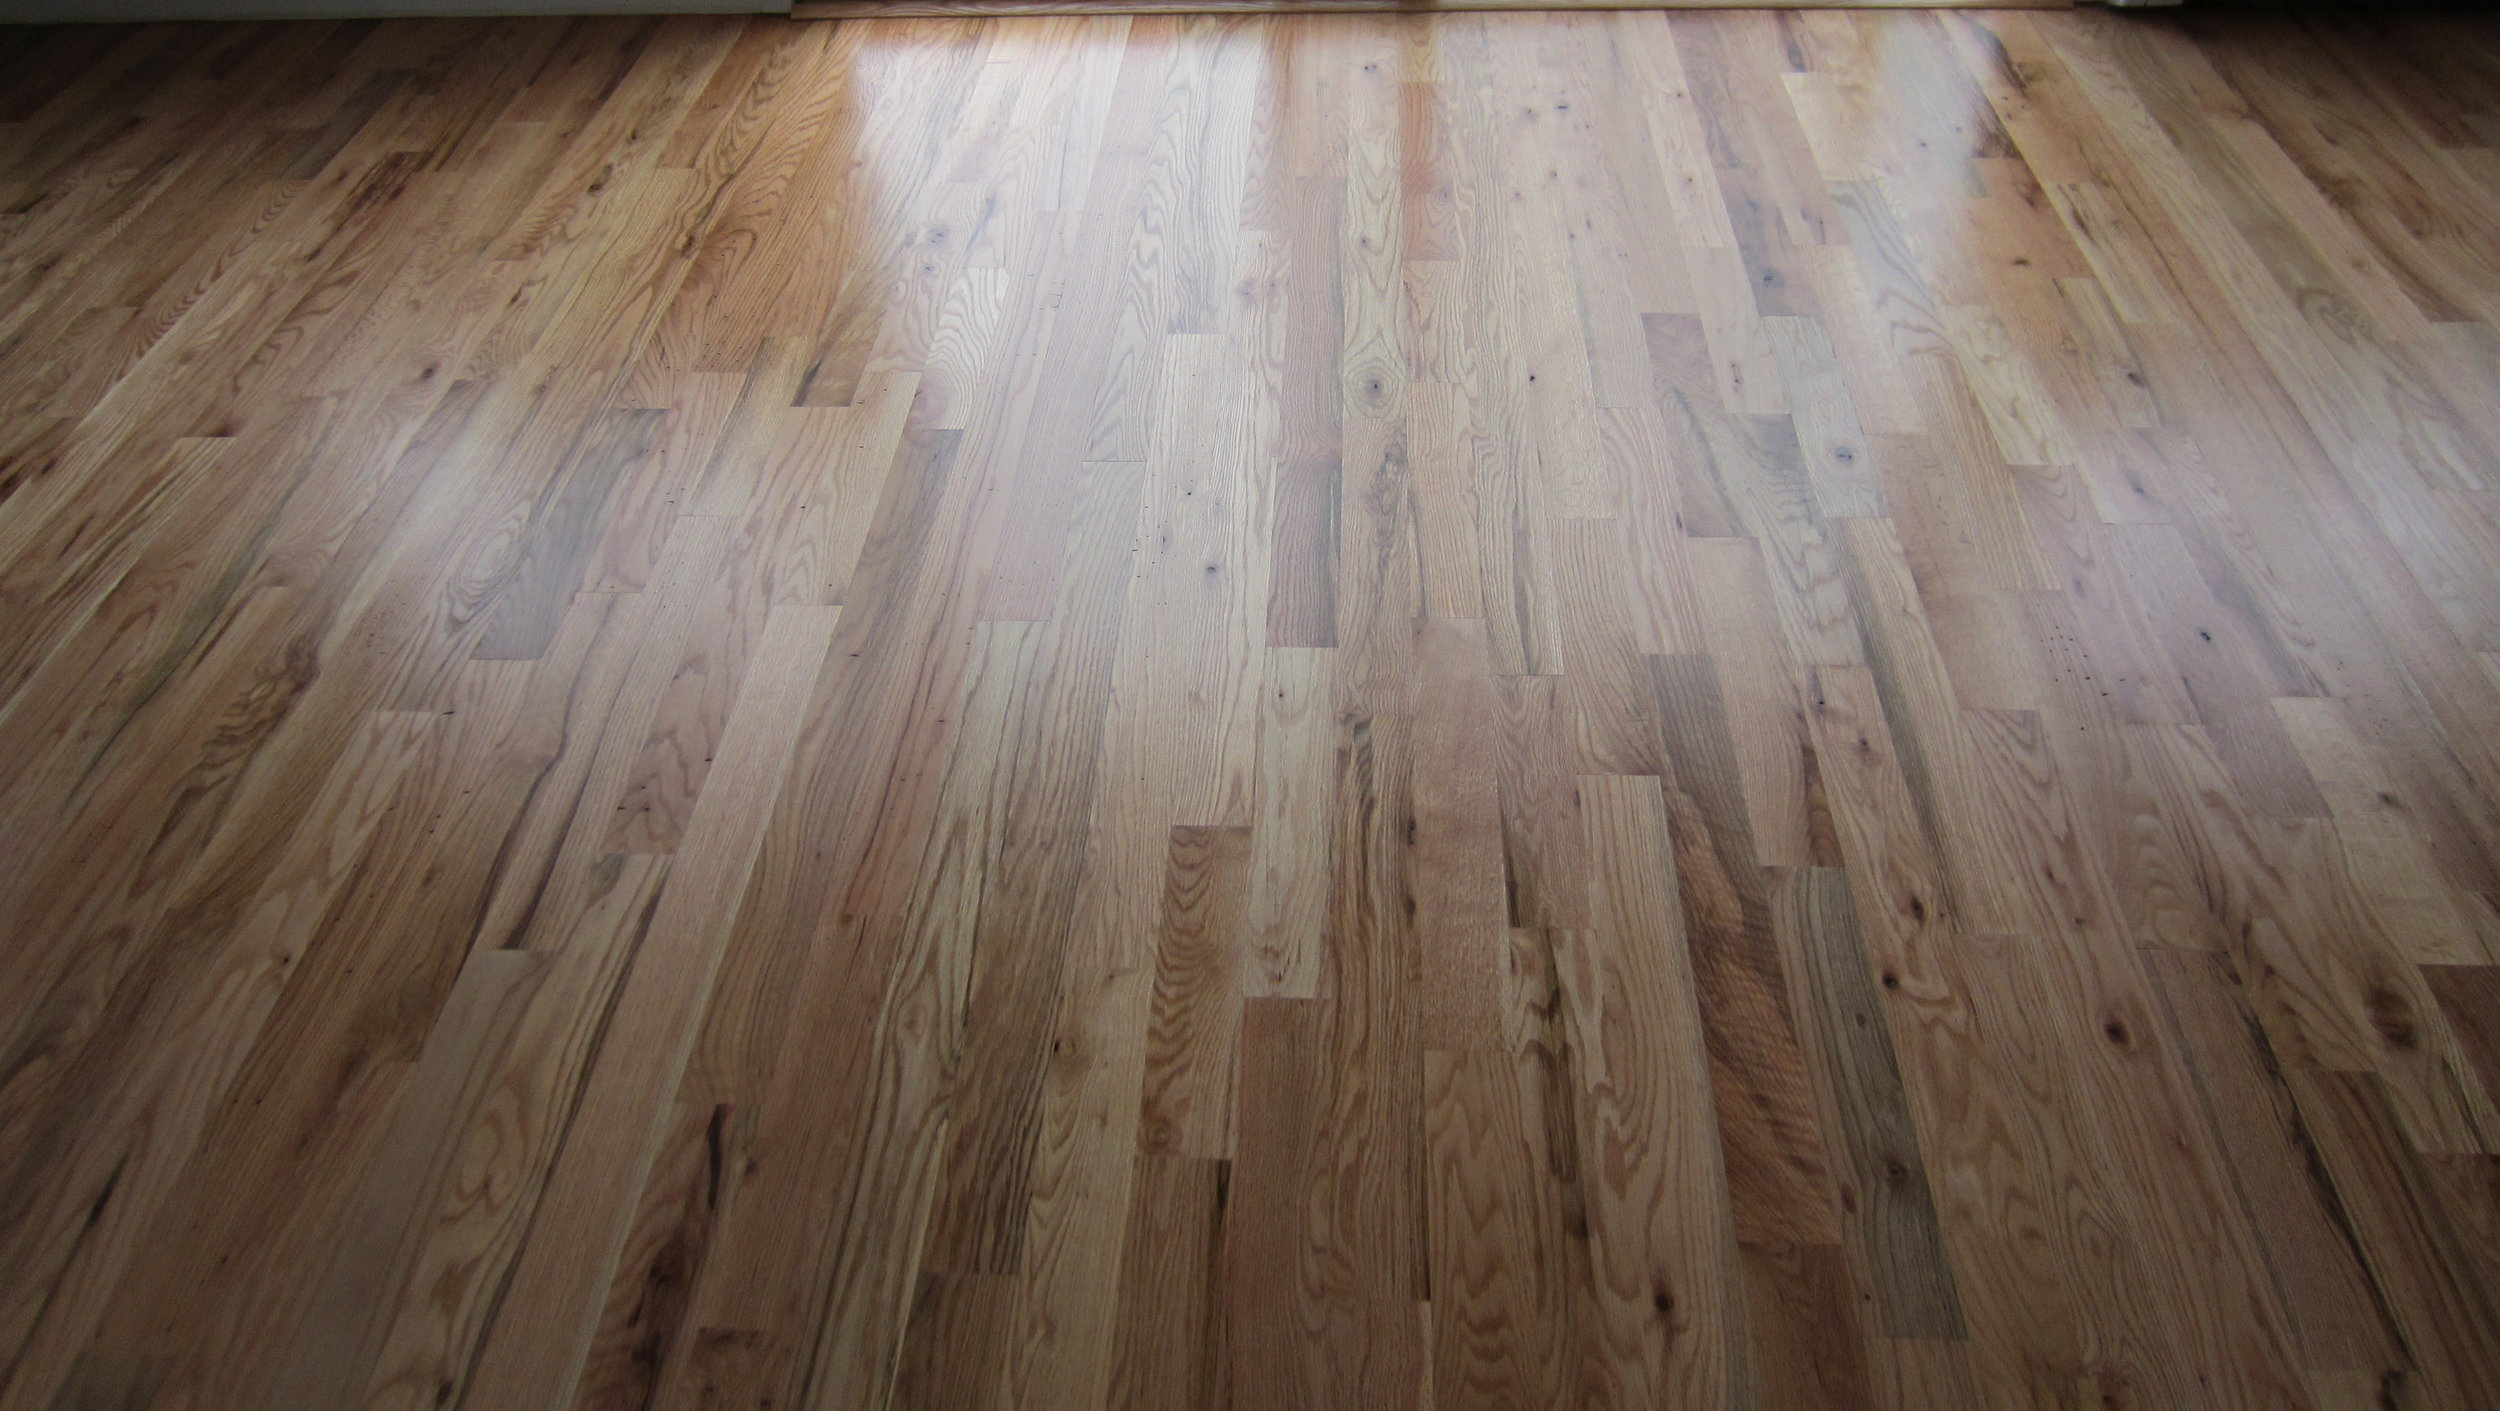 Red oak vs white hardwood flooring which is better